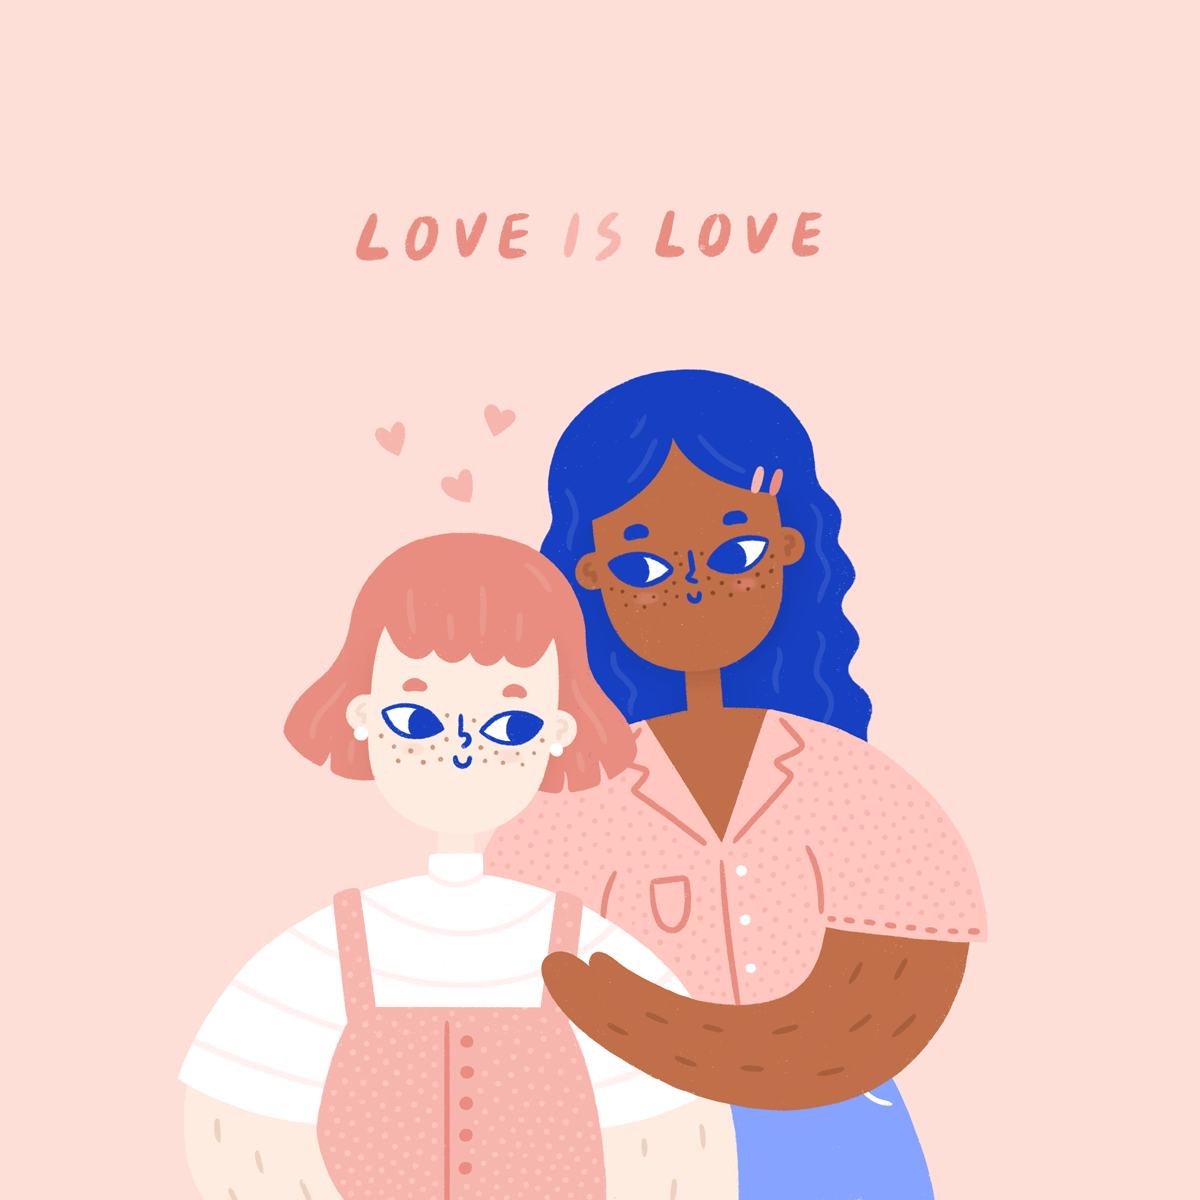 cad_illustration_loveislove_1.png